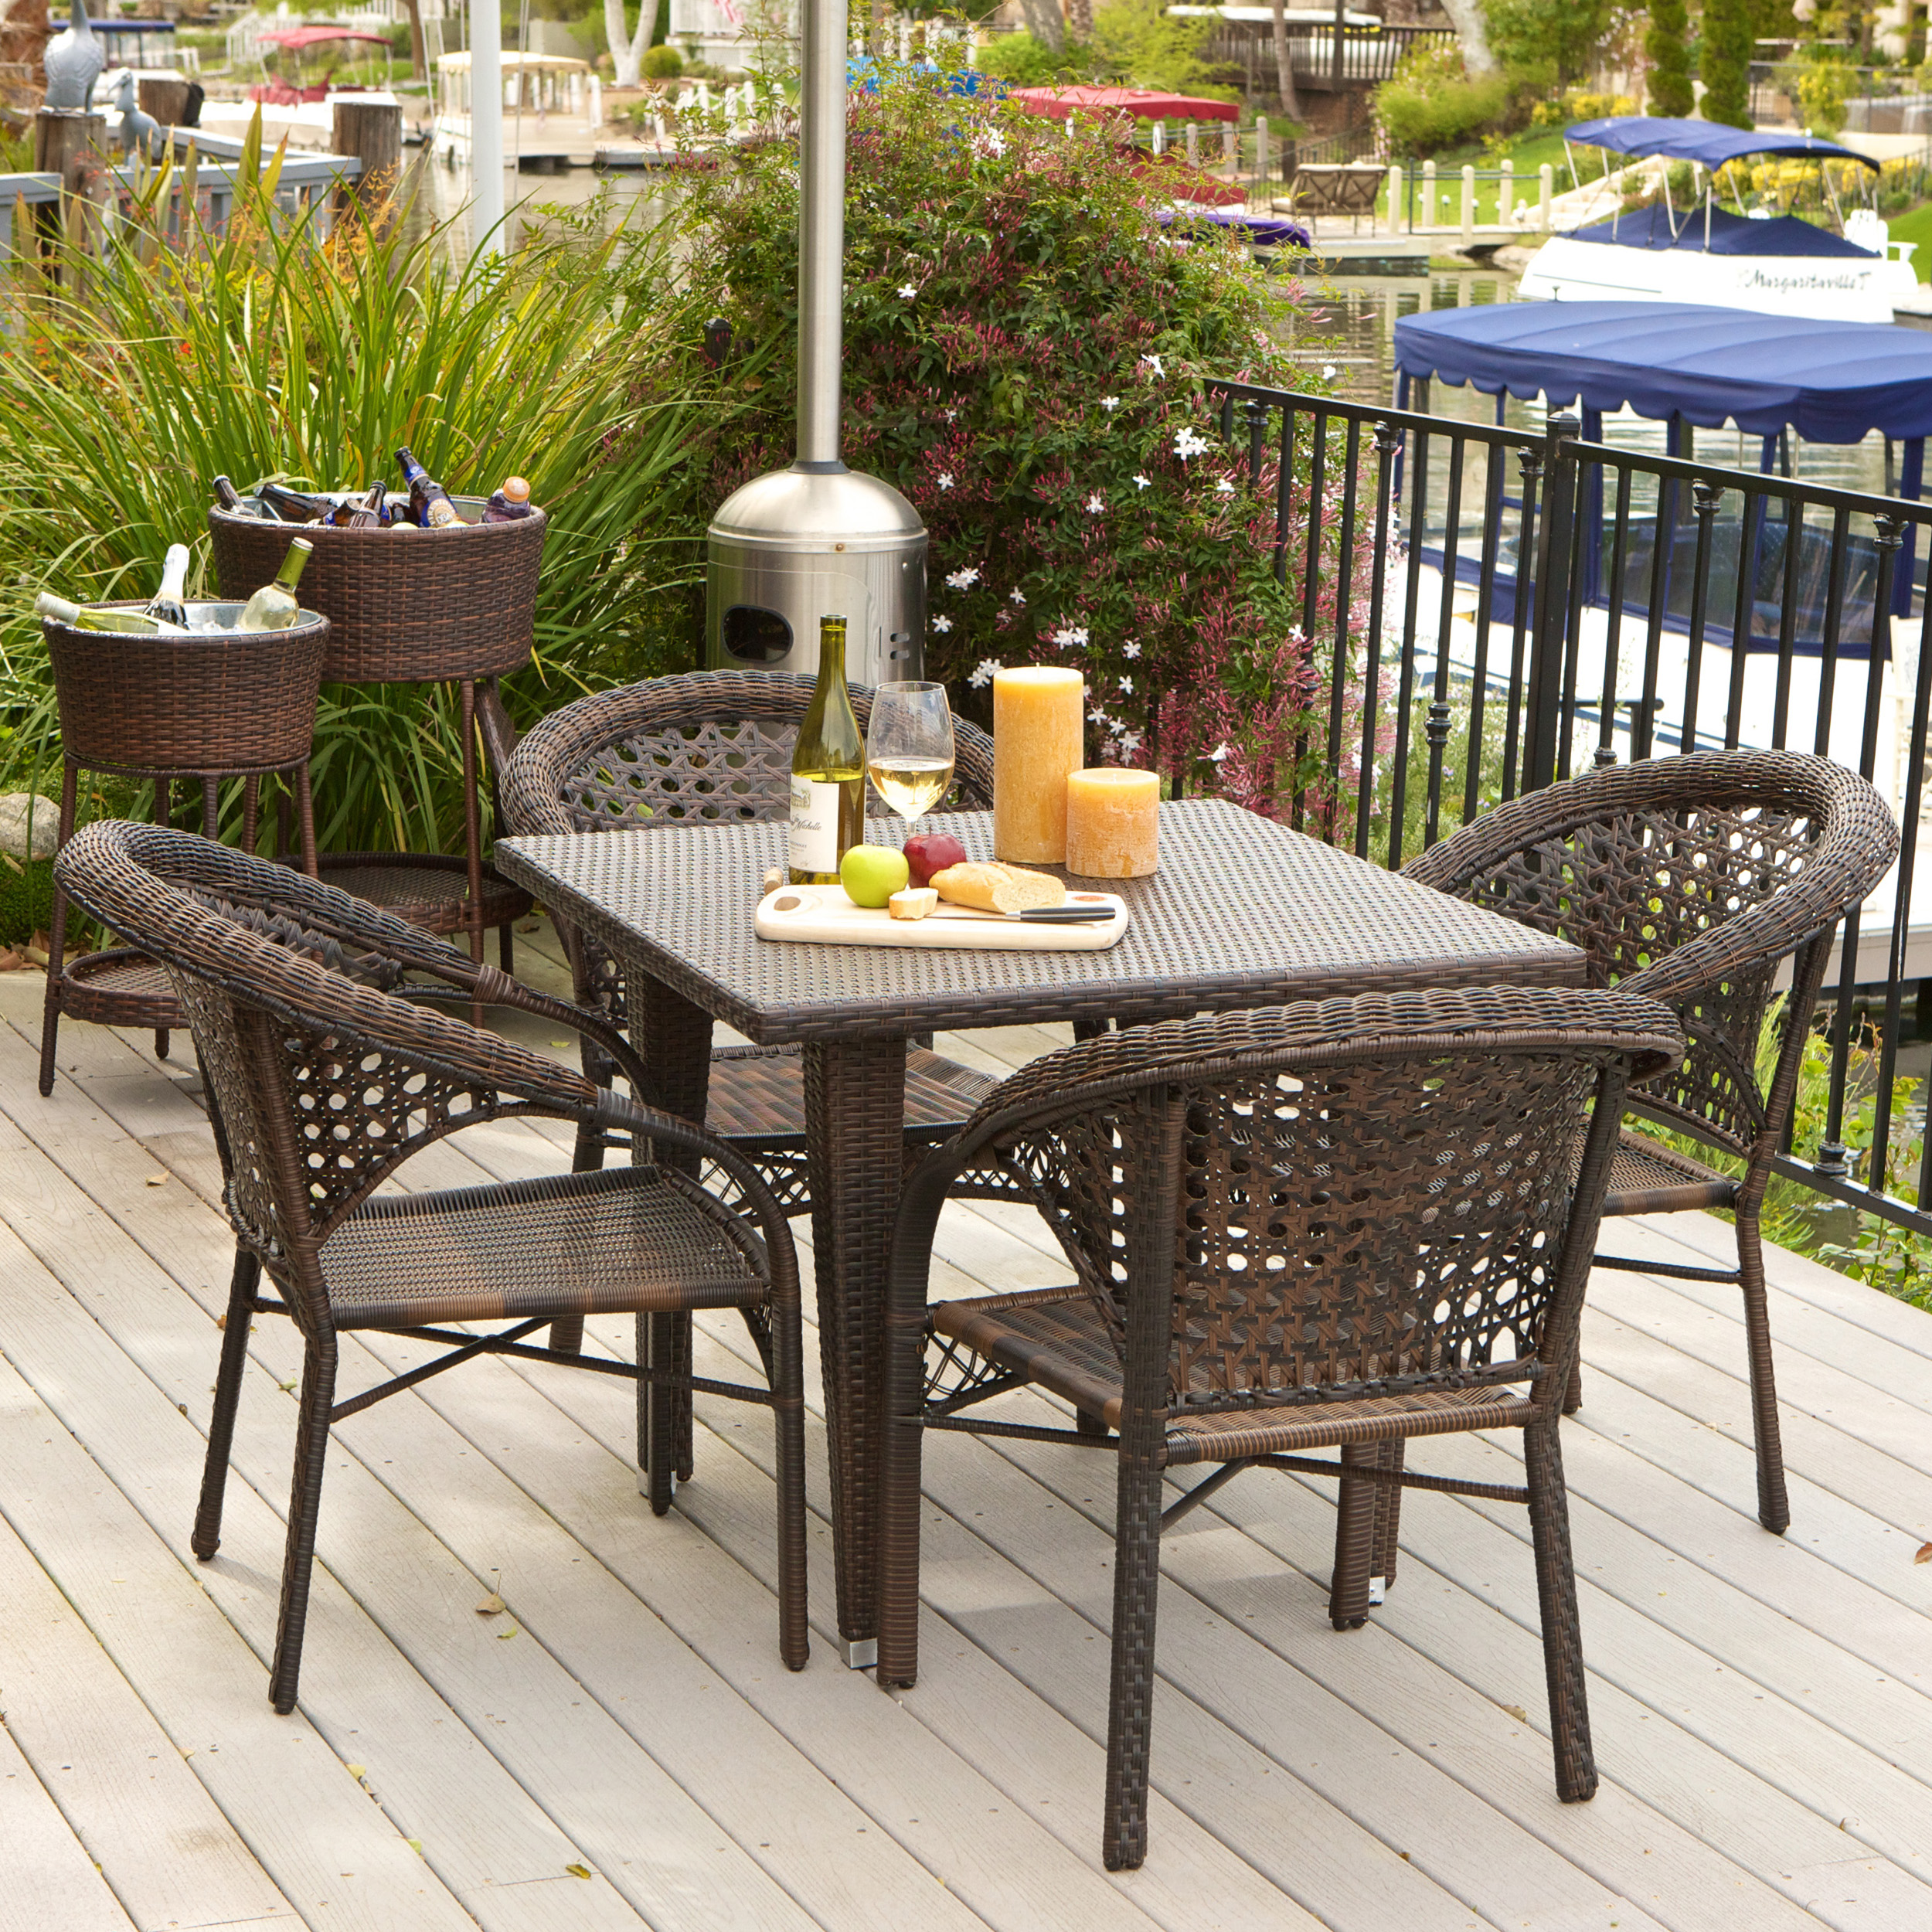 Product Image Quincy 5 Piece Outdoor Dining Set, Multibrown